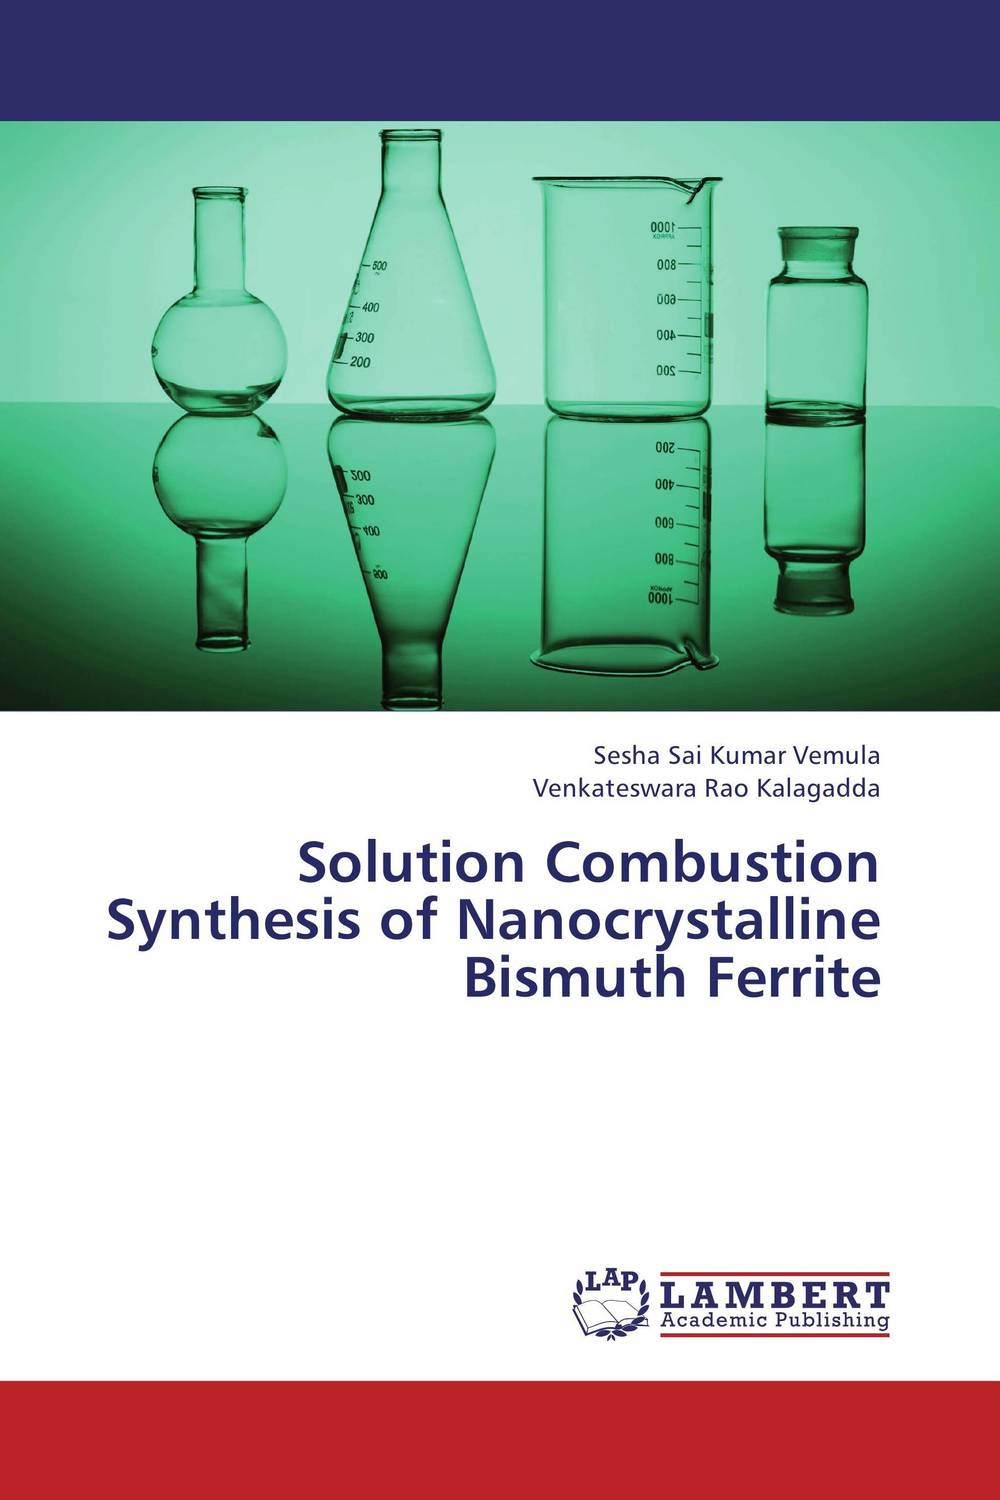 Solution Combustion Synthesis of Nanocrystalline Bismuth Ferrite ashok yadav r d askhedkar and s k choudhary synthesis and simulation of trolley for patient handling